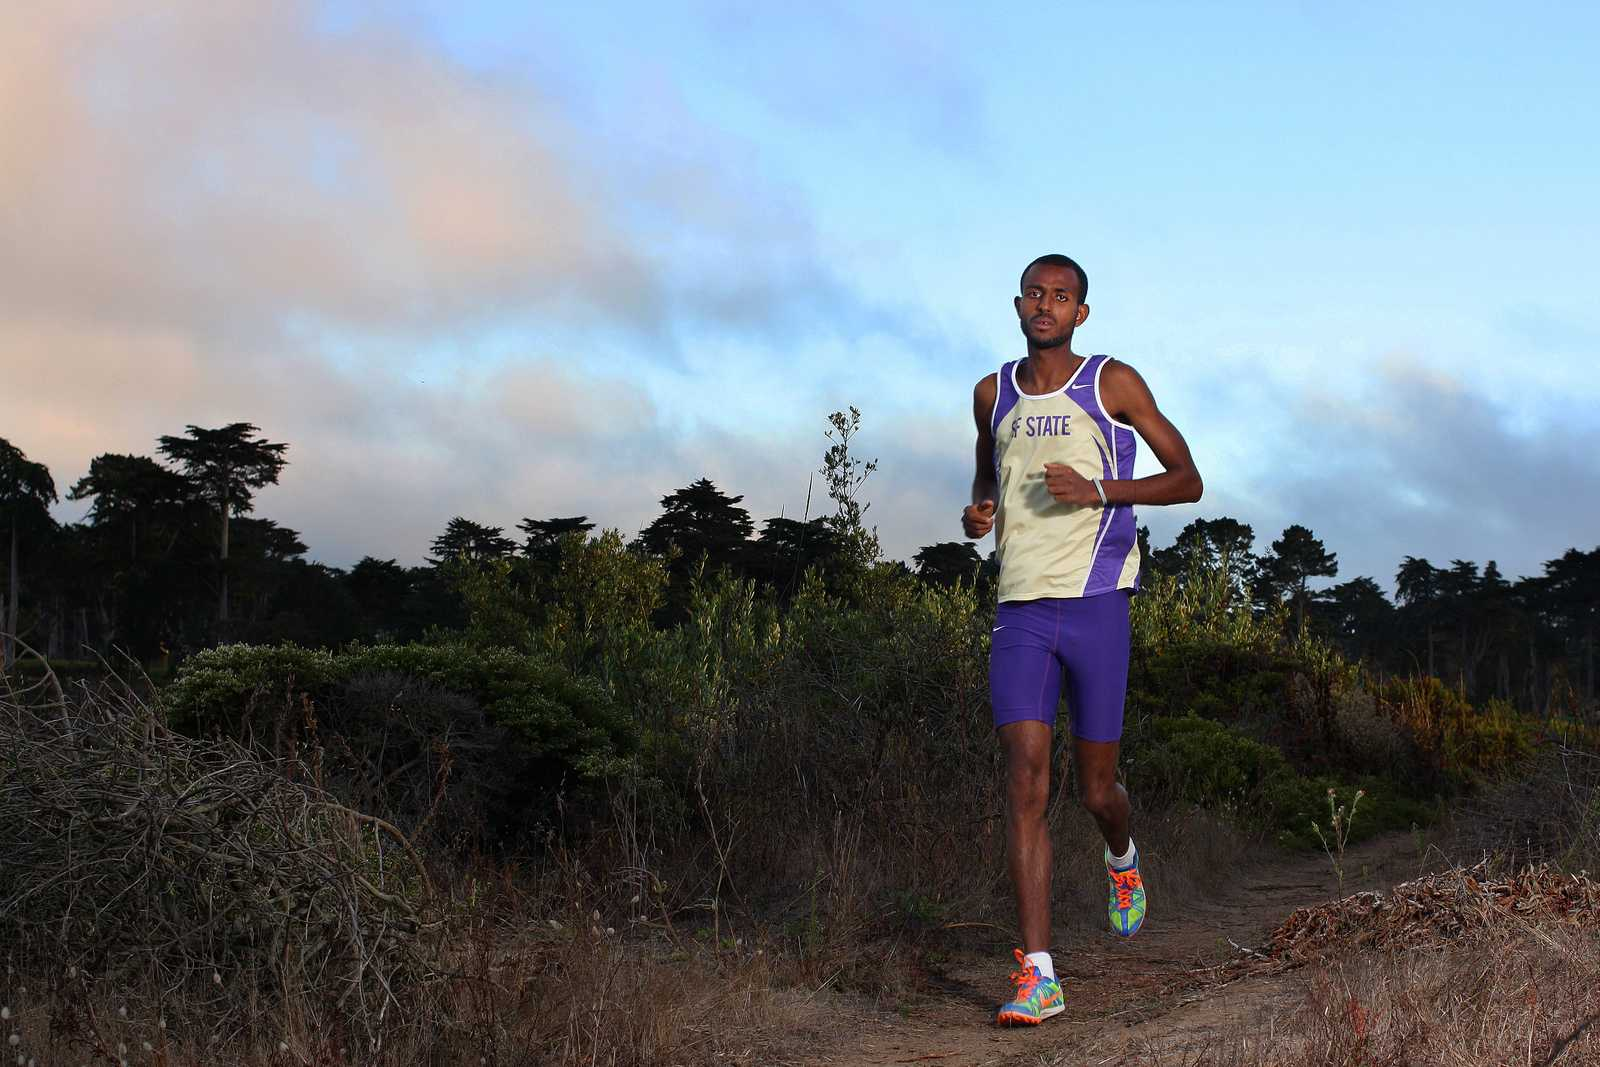 Cross-country Gator trains in Ethiopia with Olympic legend